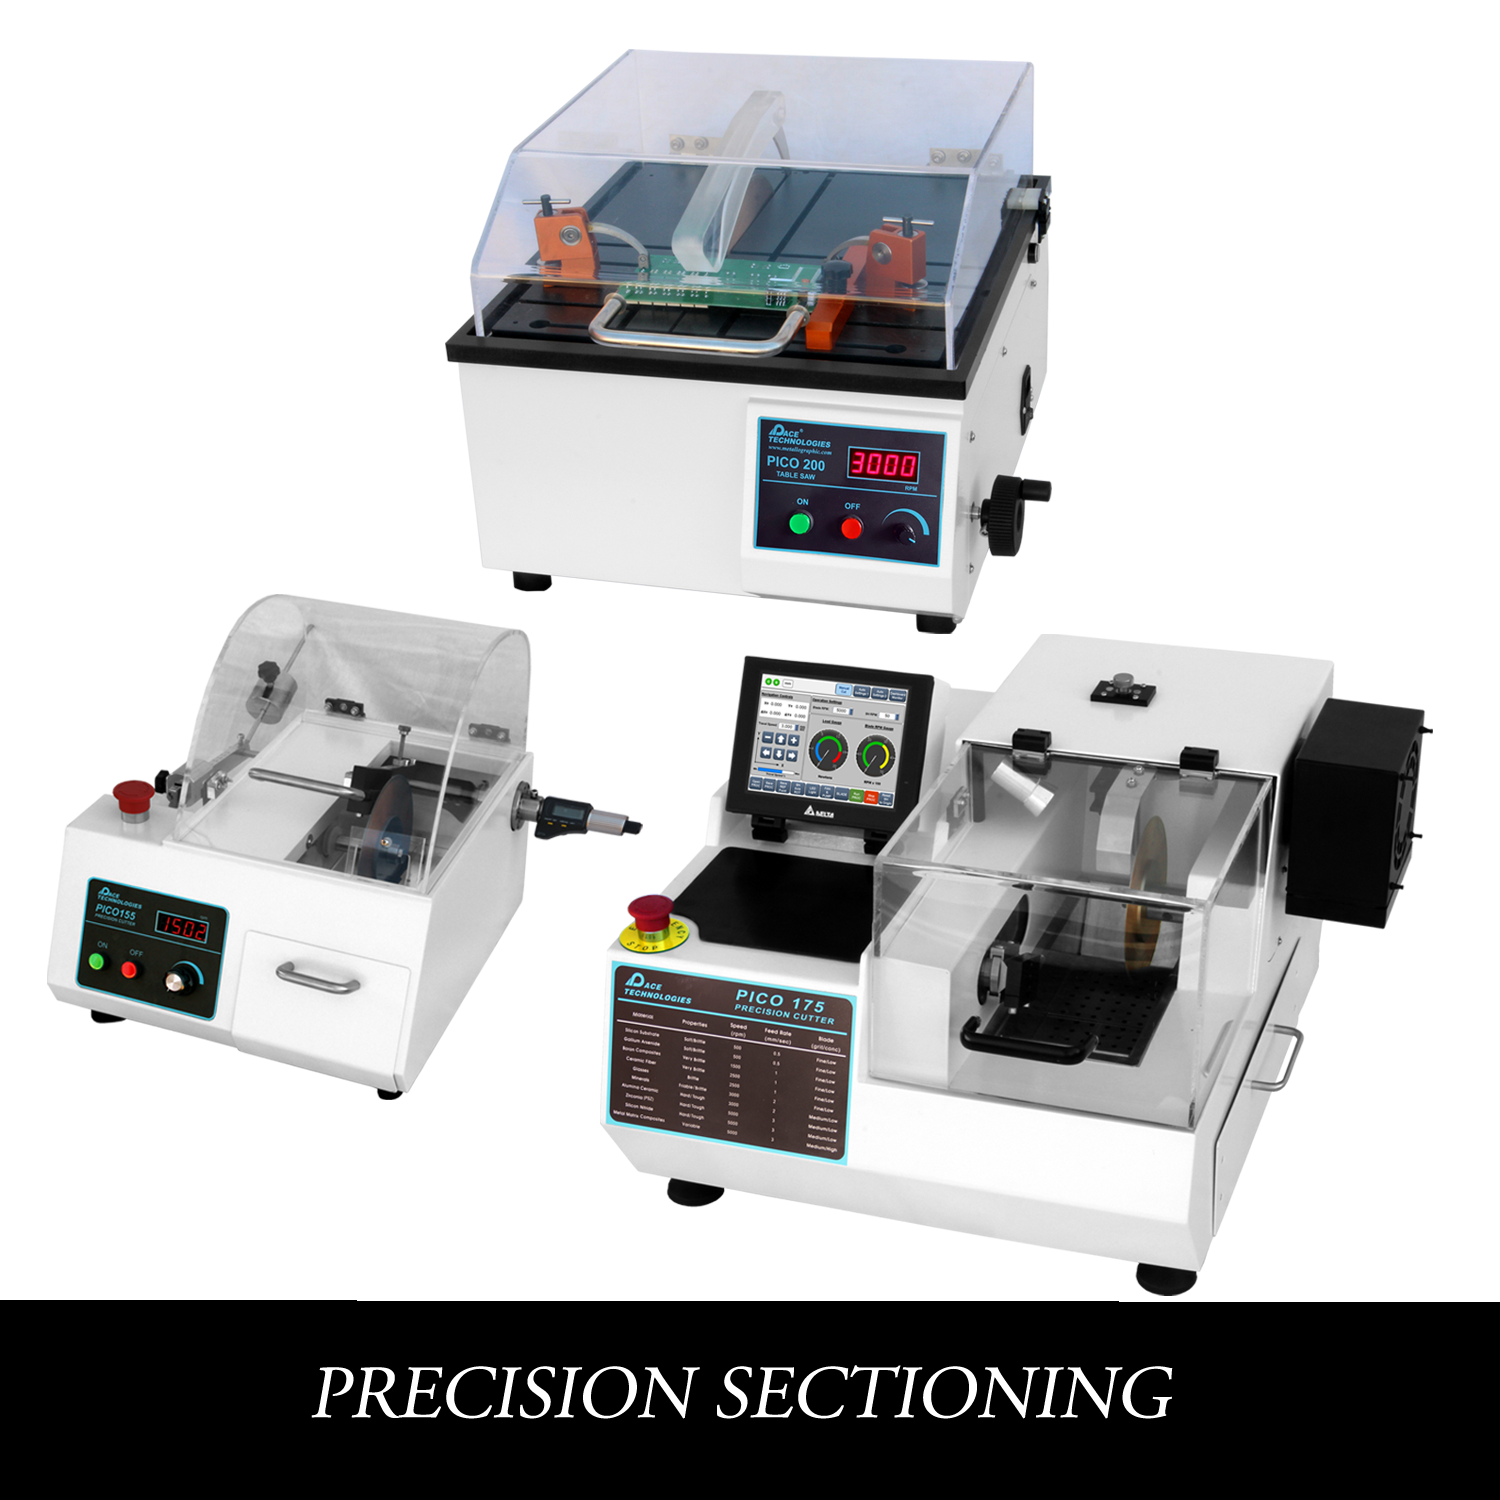 Metallographic Precision Sectioning saws